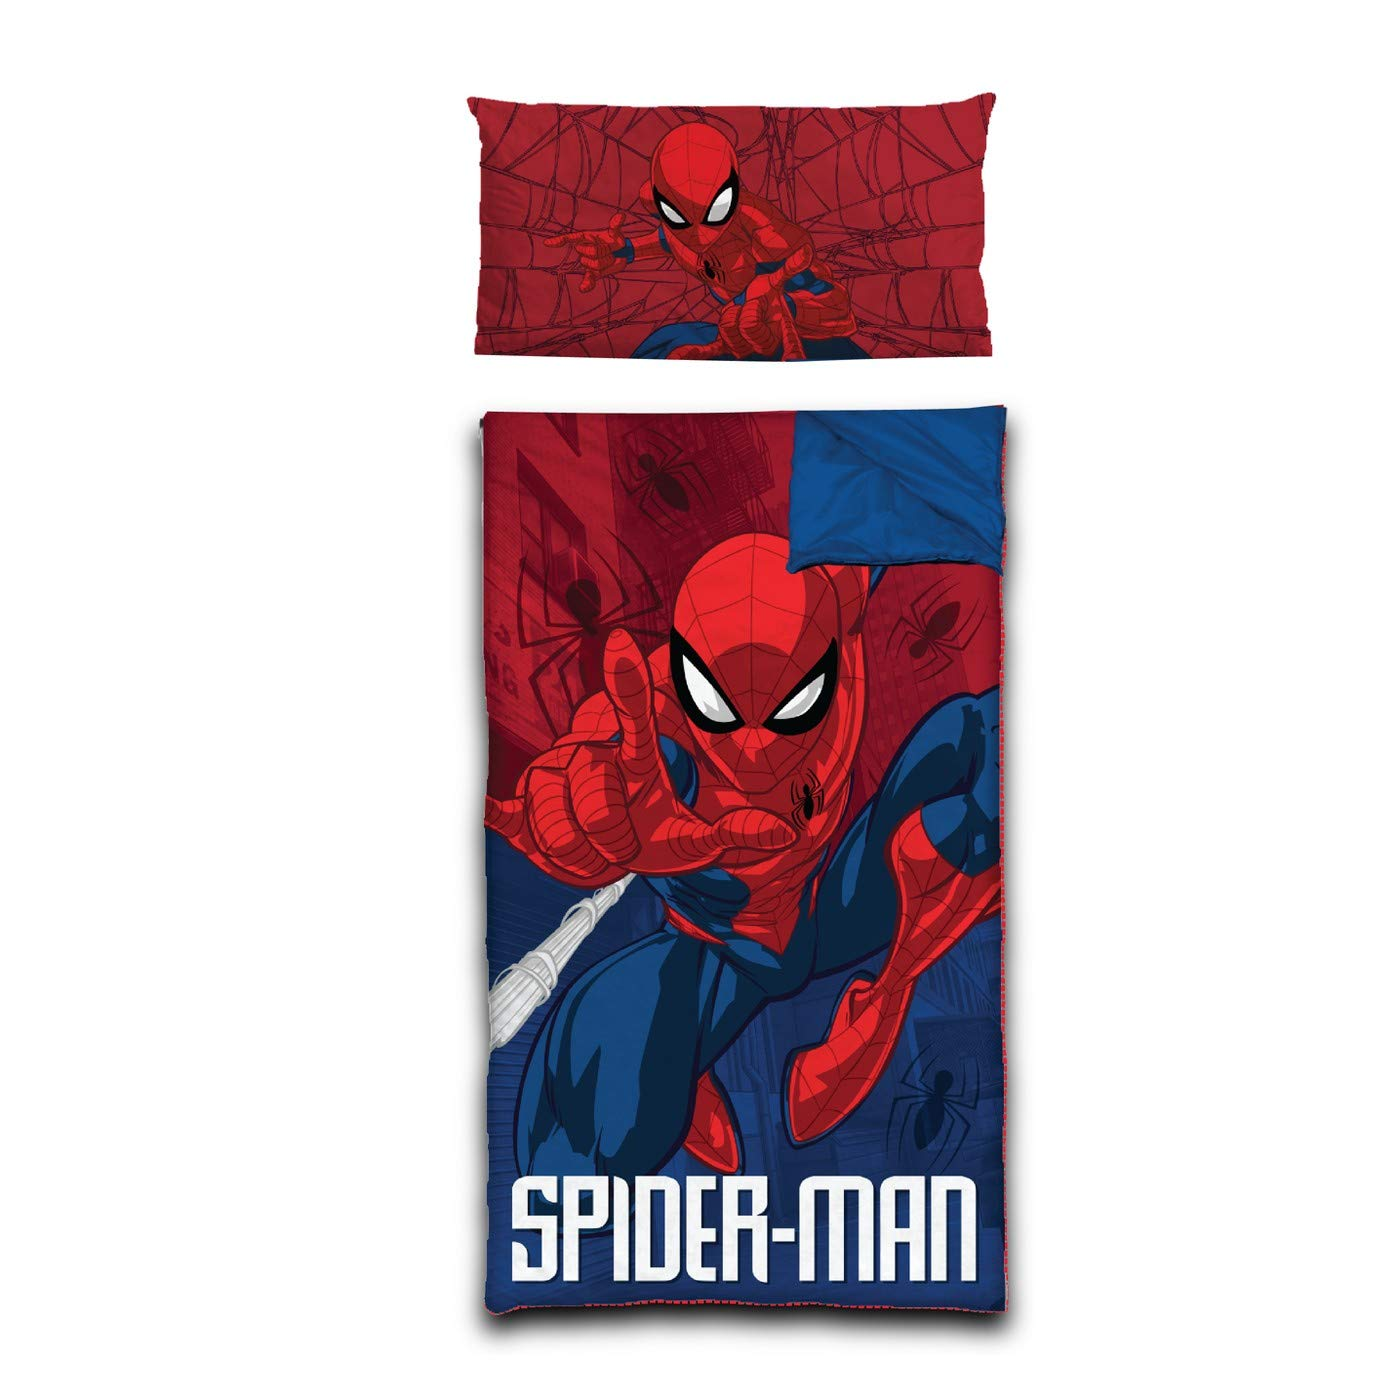 Marvel Spiderman Slumber Bag with Pillow by Marvel